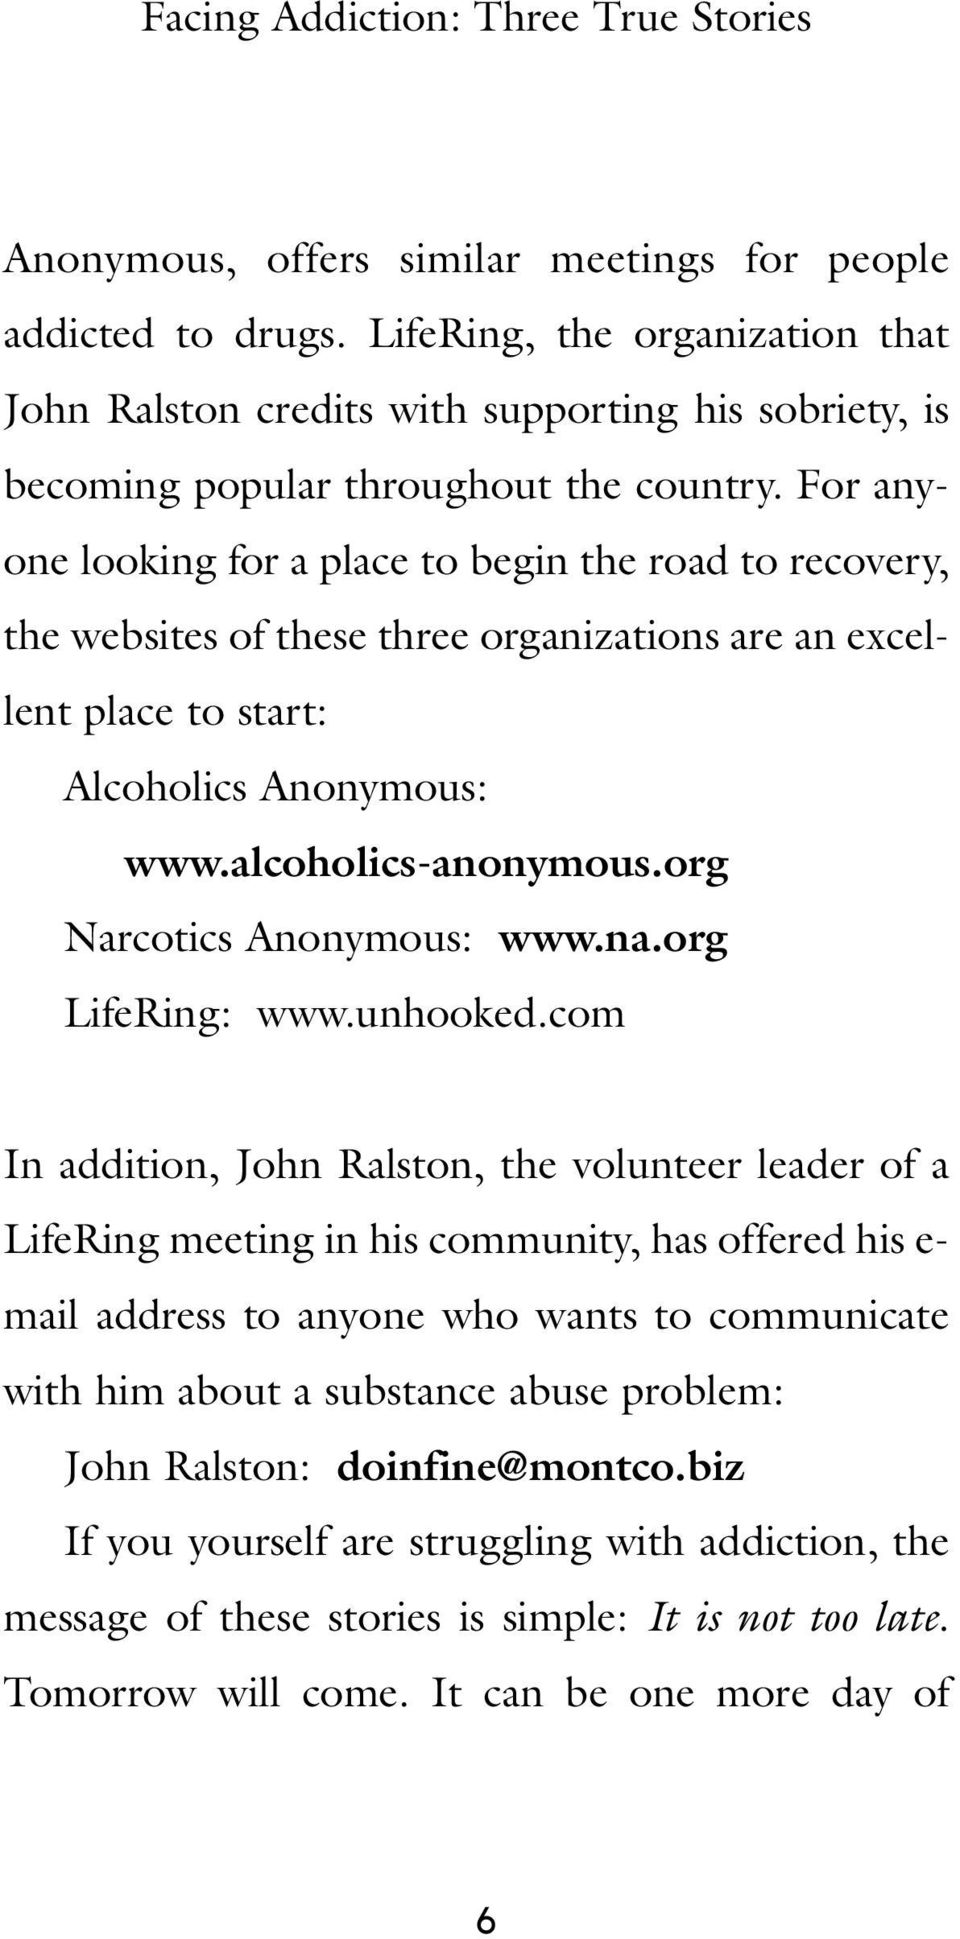 For anyone looking for a place to begin the road to recovery, the websites of these three organizations are an excellent place to start: Alcoholics Anonymous: www.alcoholics-anonymous.